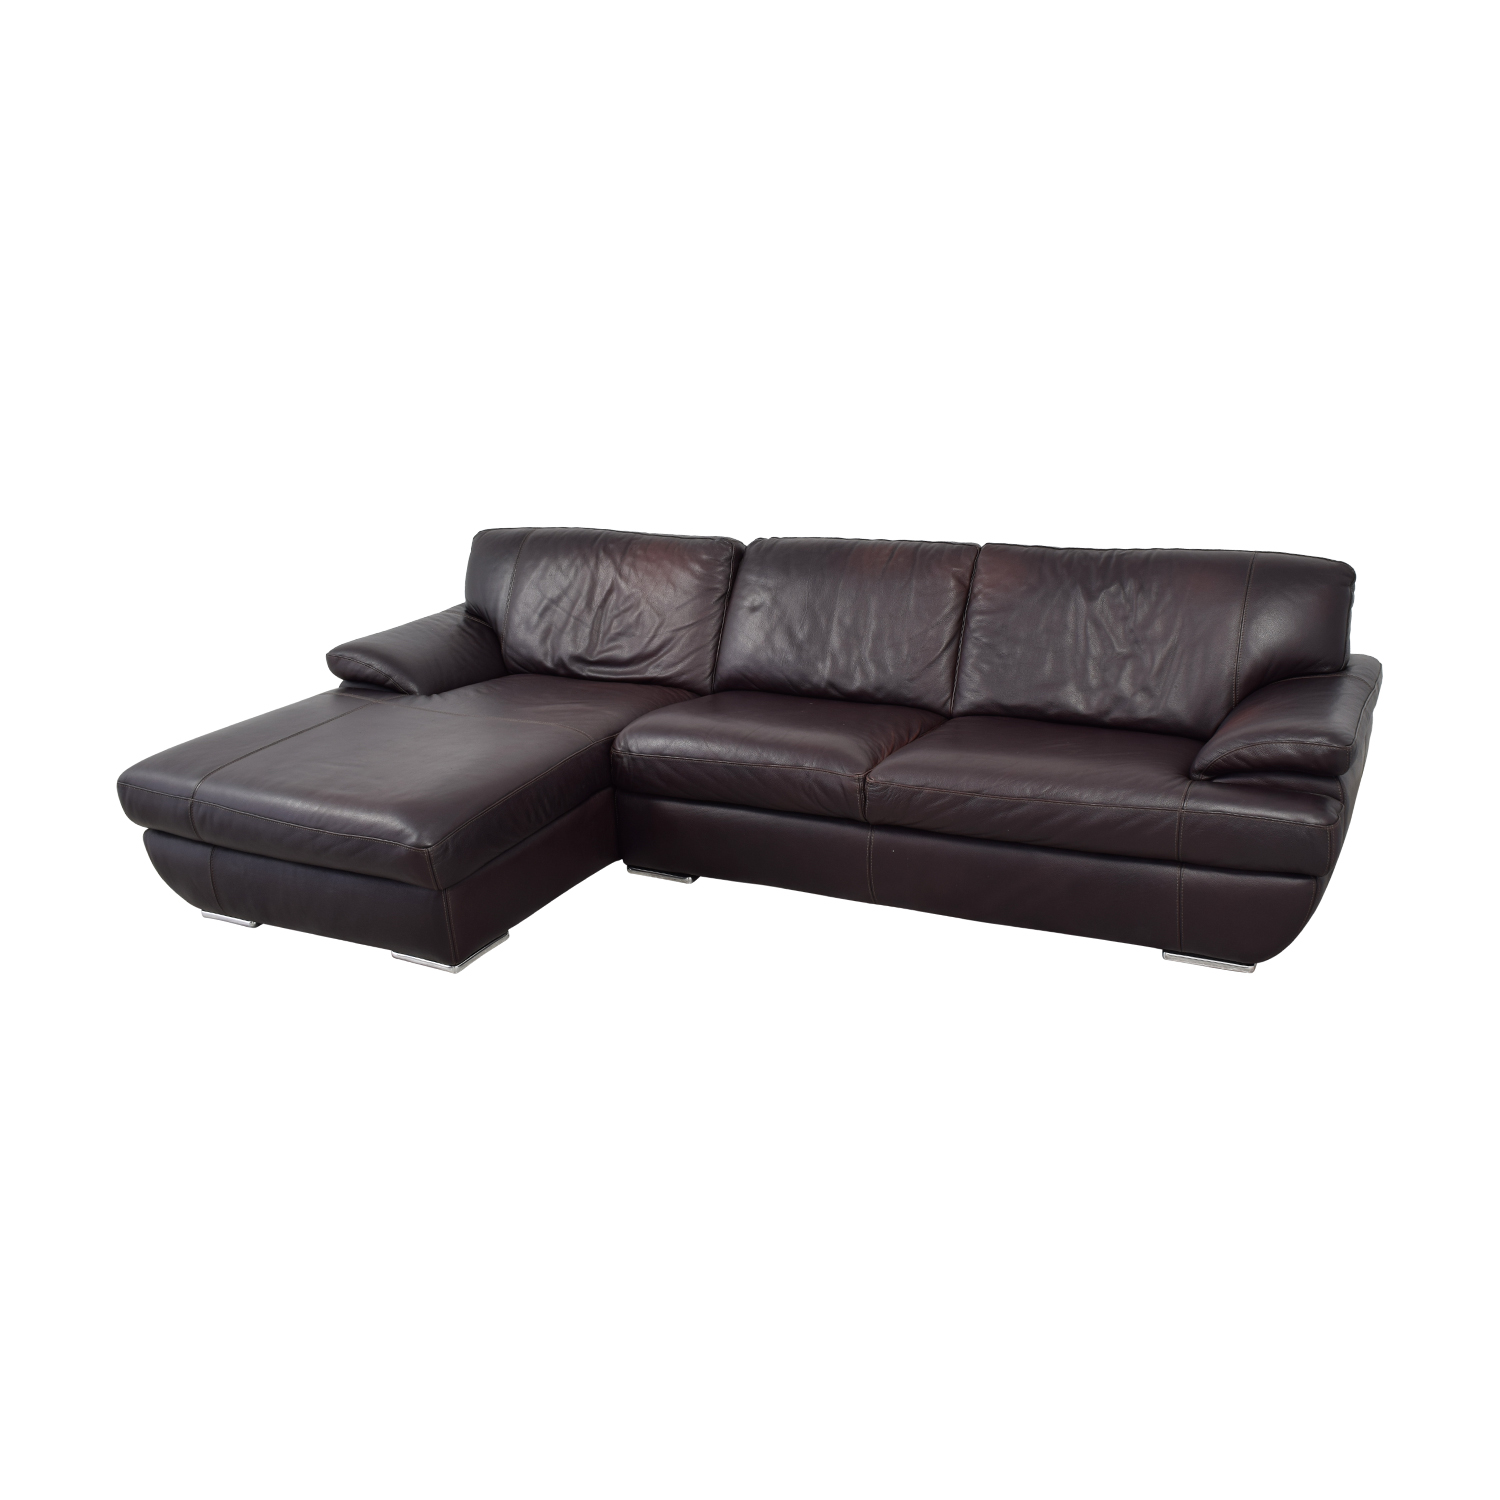 Chateau D'Ax Chateau D'Ax Brown Leather Left